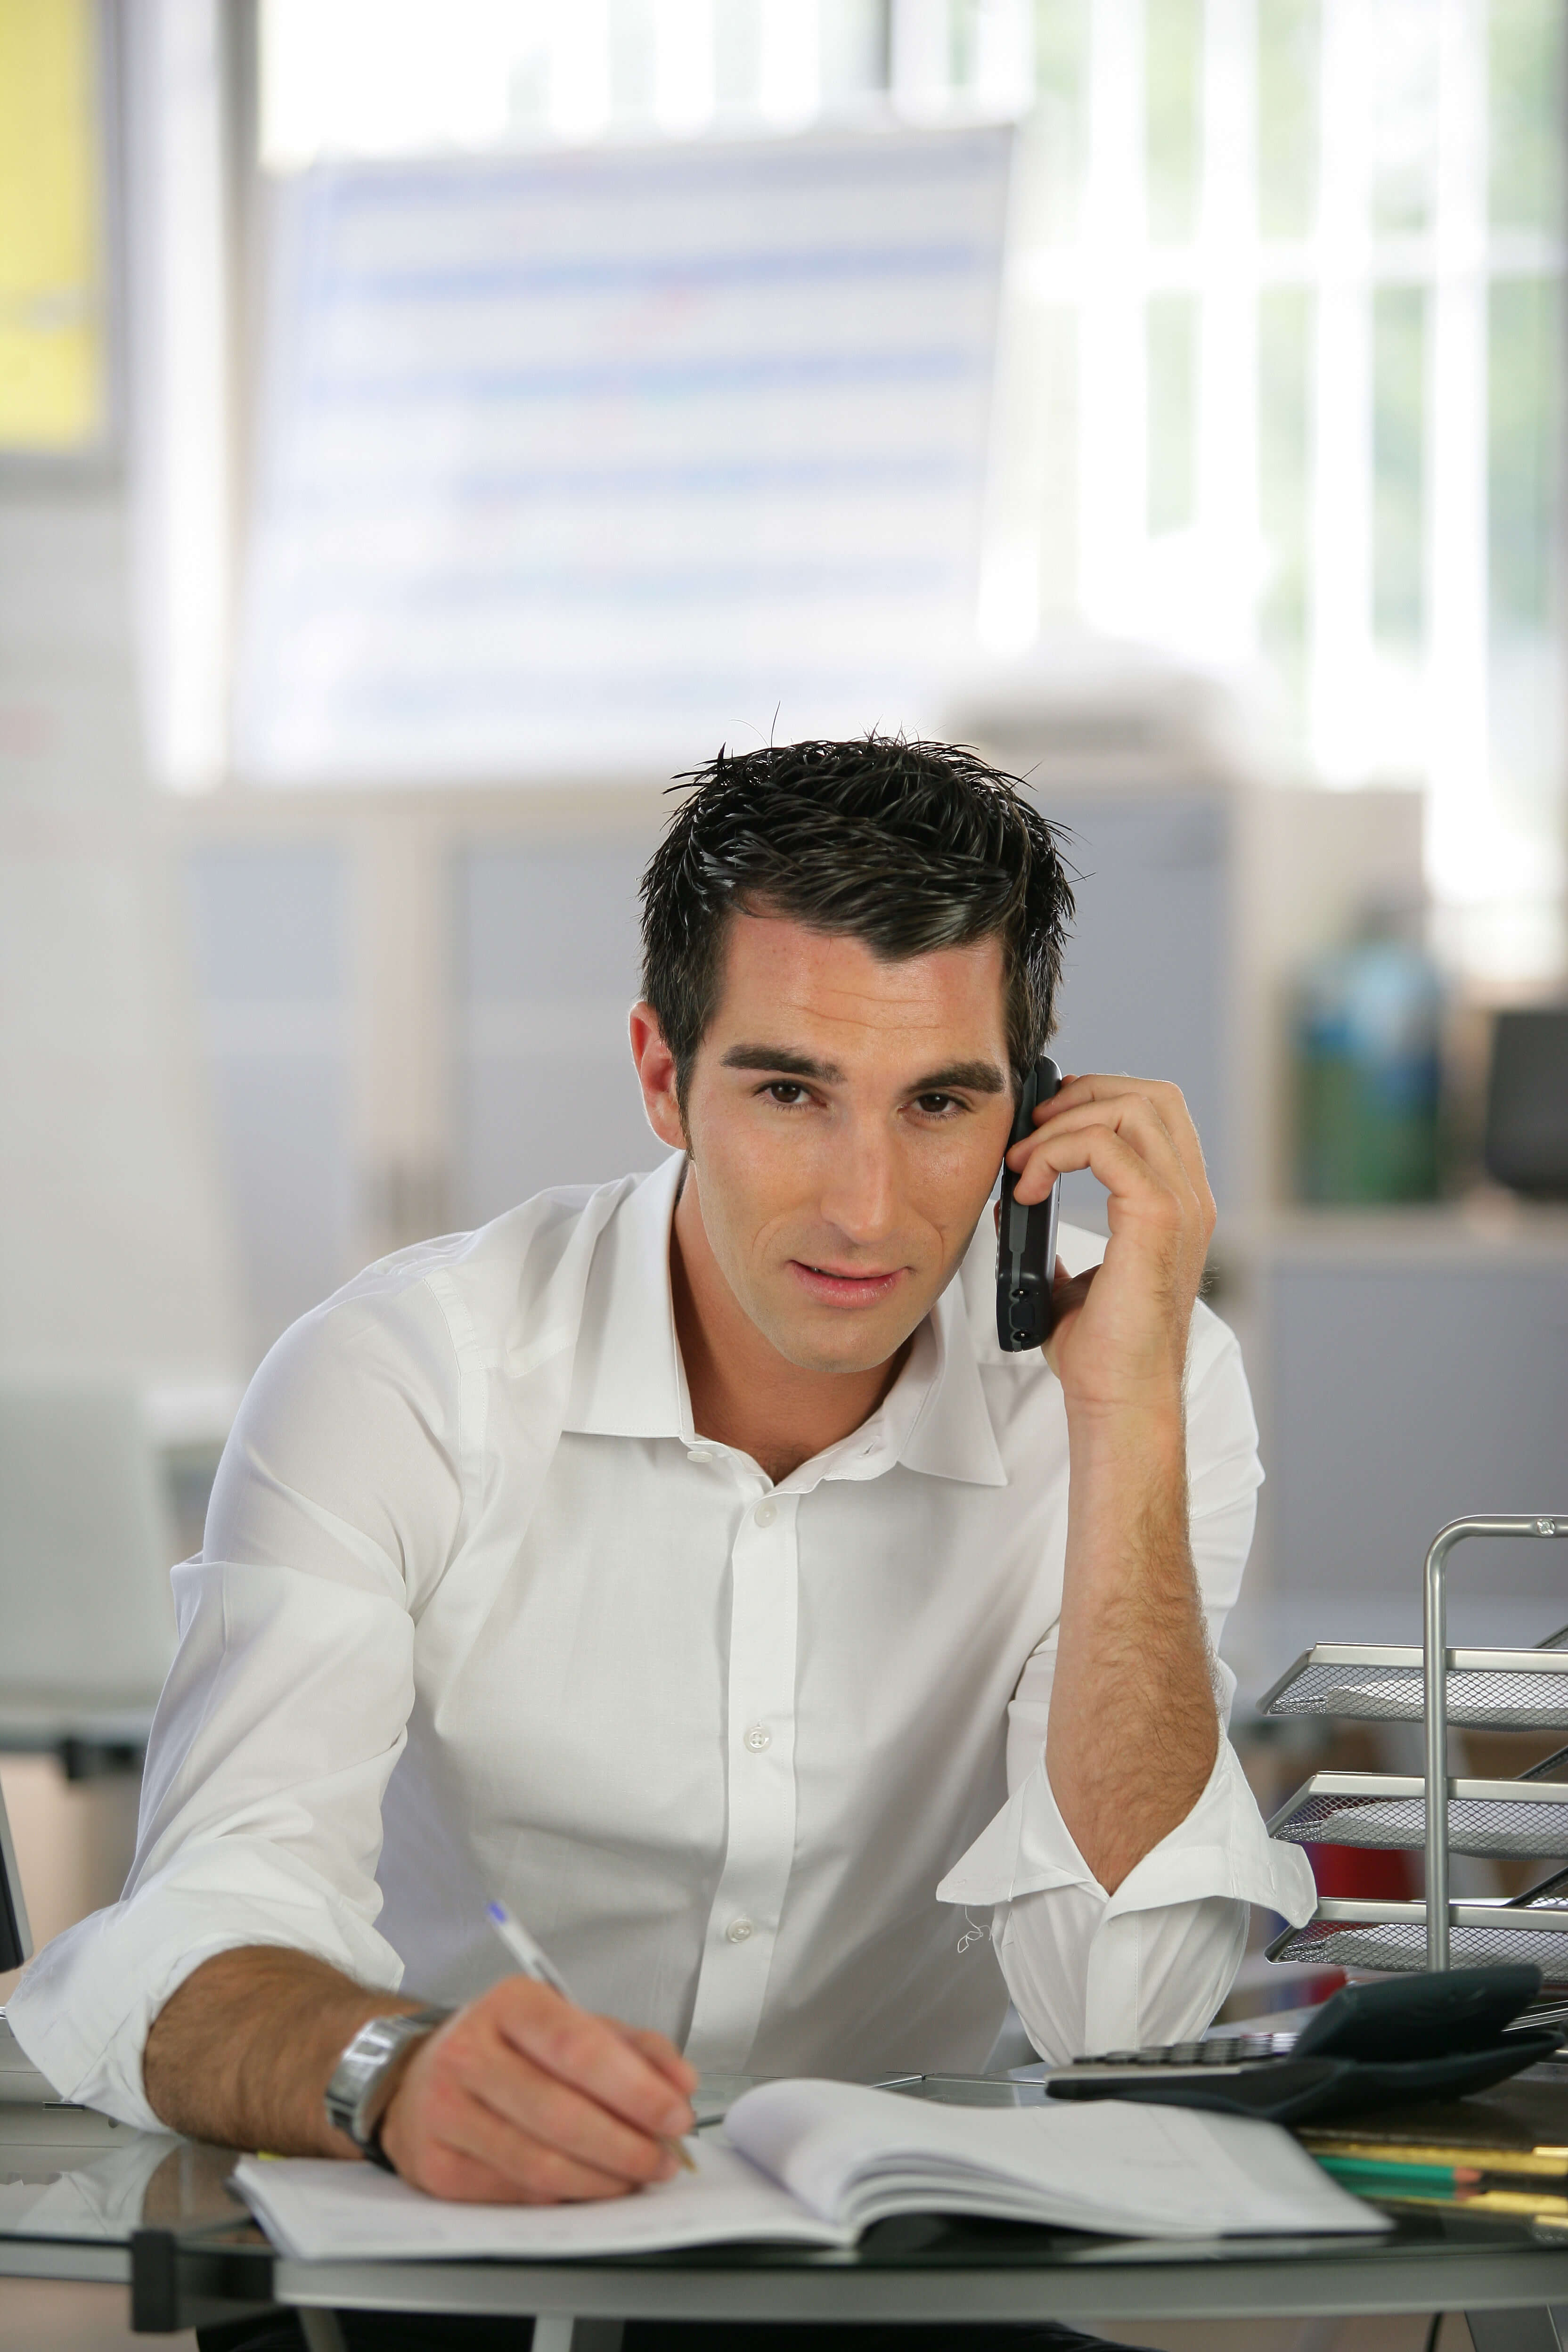 alliance solutions group blog archive mastering the phone screen recruiter having phone call